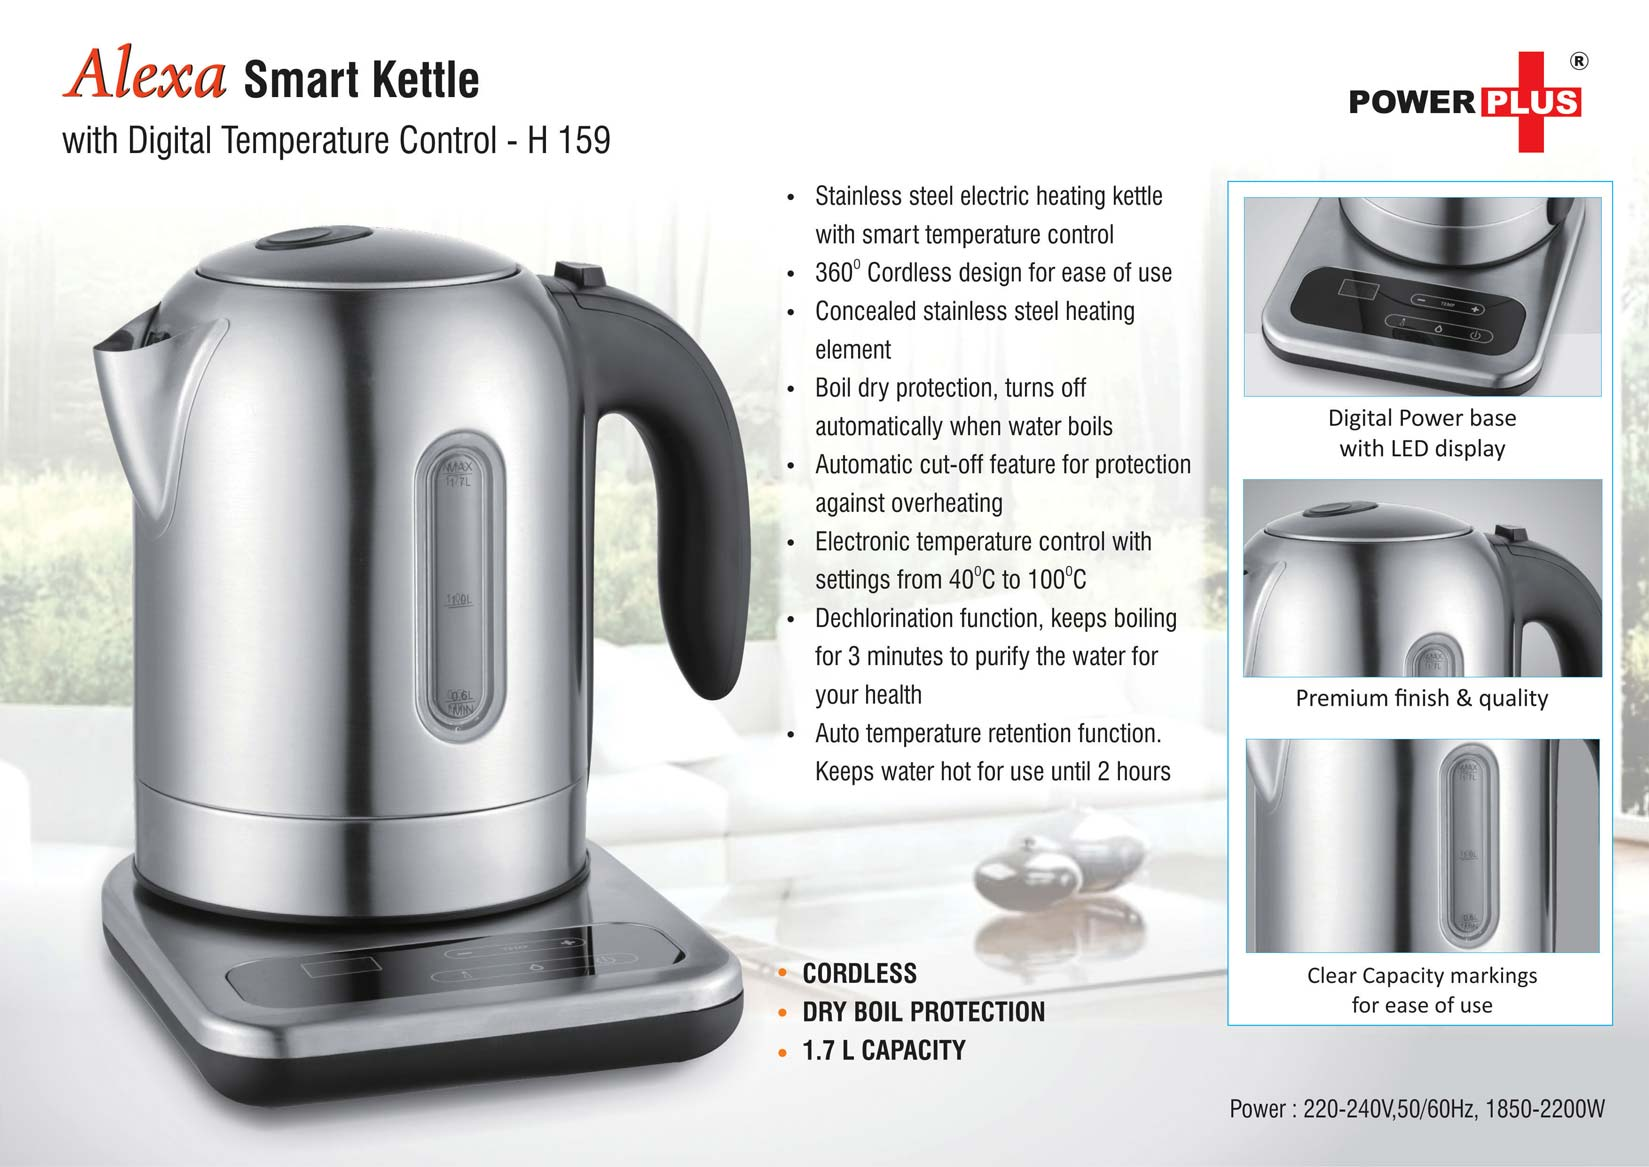 H159 - Alexa: Smart SS Kettle with digital temperature control